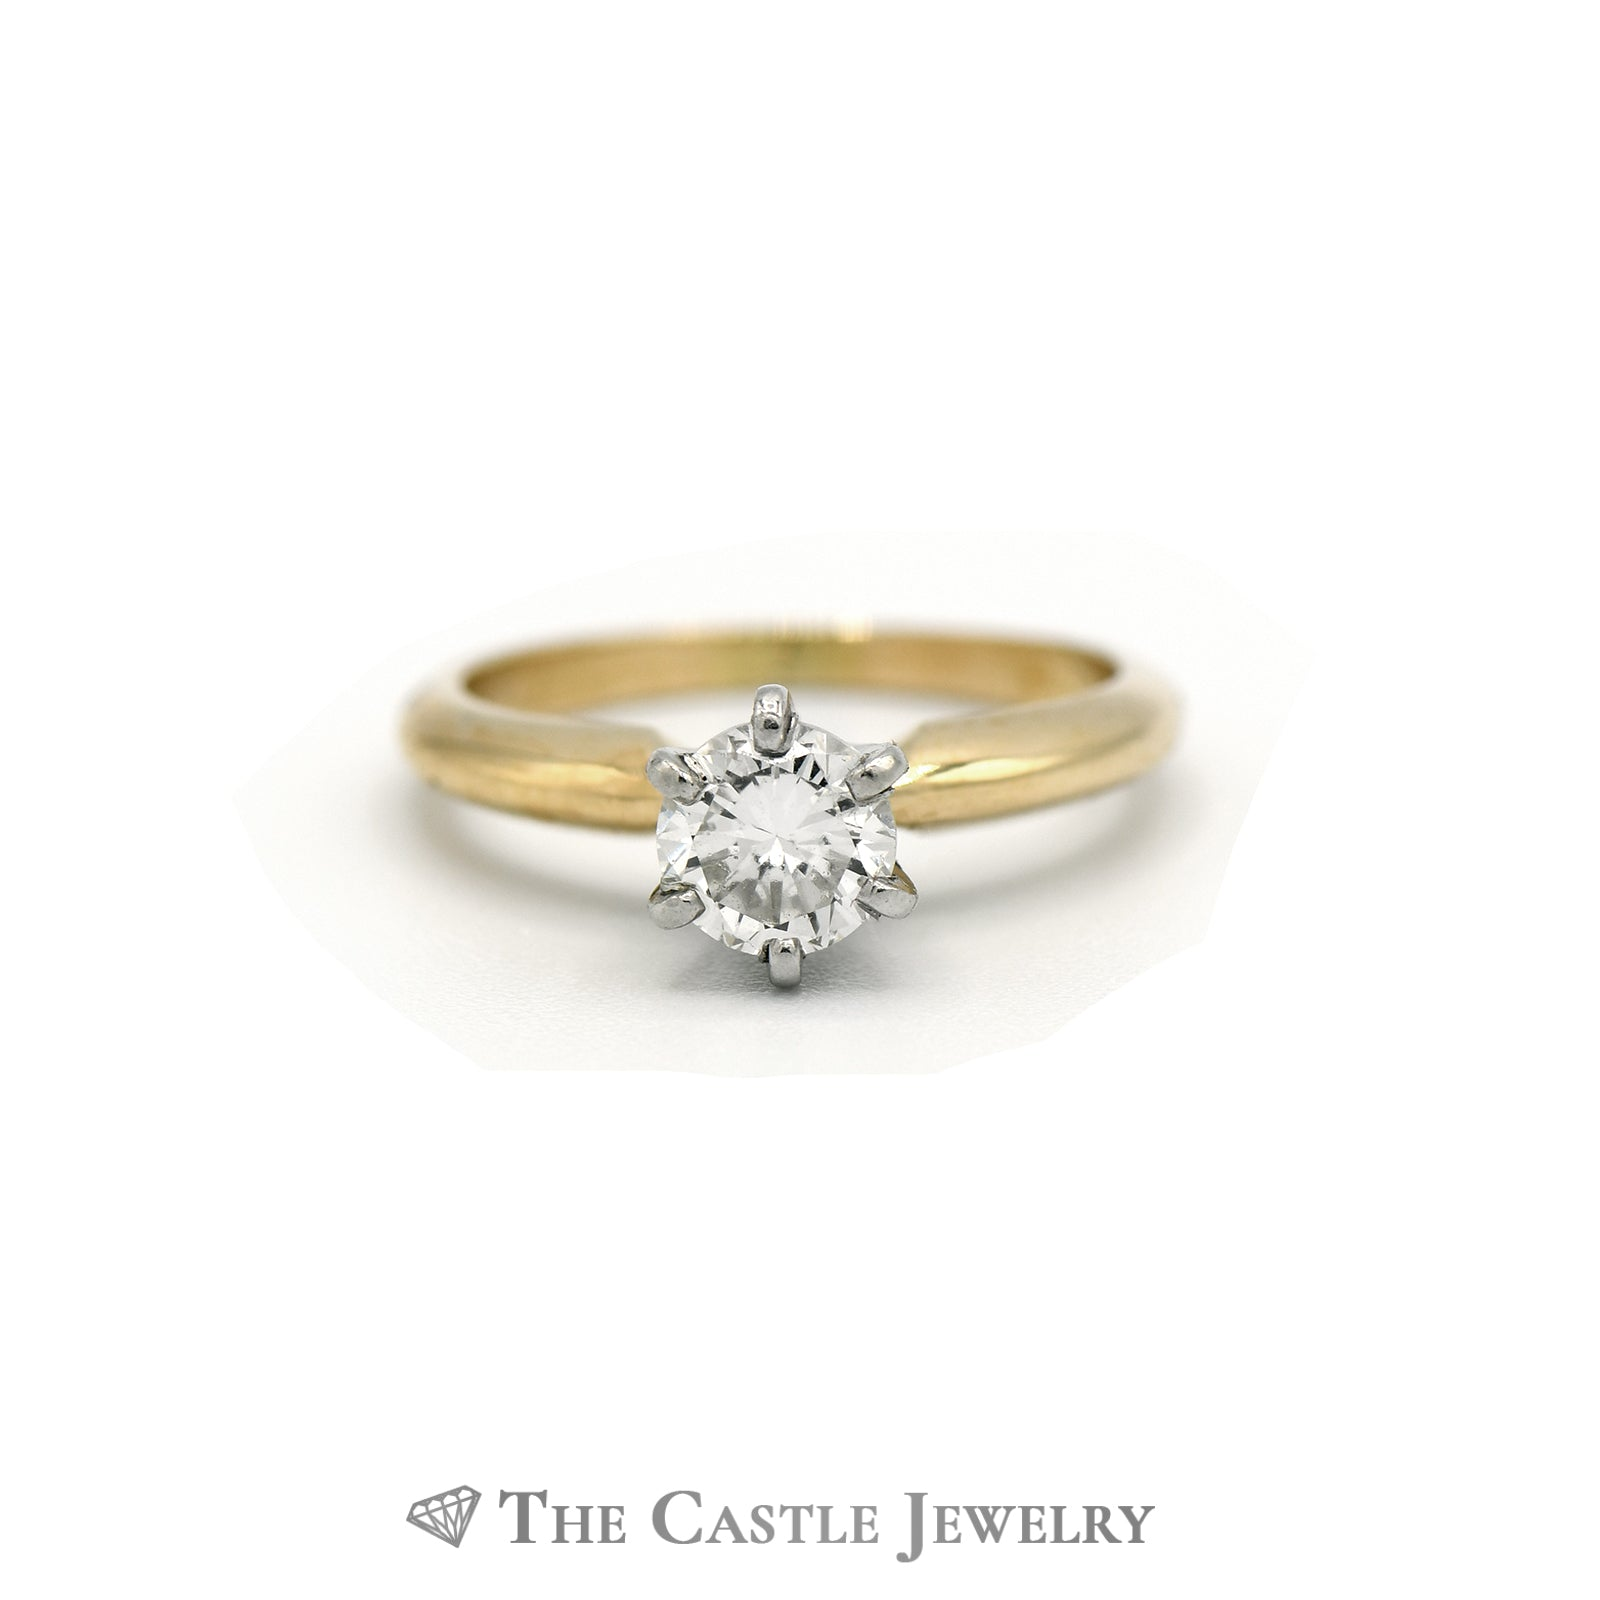 Round Brilliant Cut Diamond Solitaire Engagement Ring in 14K Yellow Gold